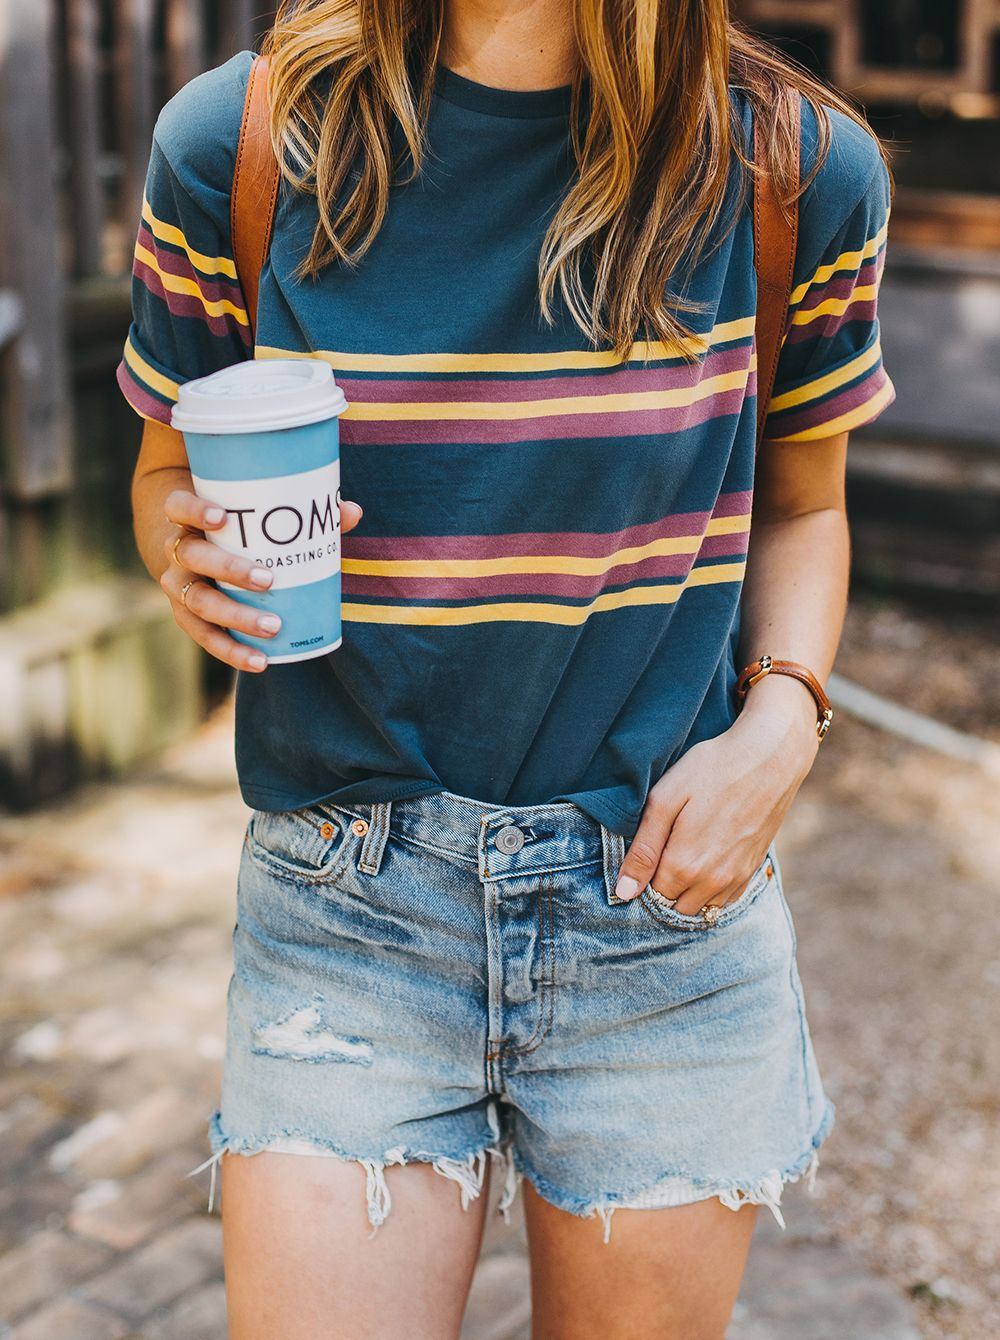 345f9caeec7 livvyland-blog-olivia-watson-austin-texas-fashion-style-urban-outfitters -striped-vintage-tee-levis-denim-wedgie-shorts -madewell-mini-leather-backpack-6